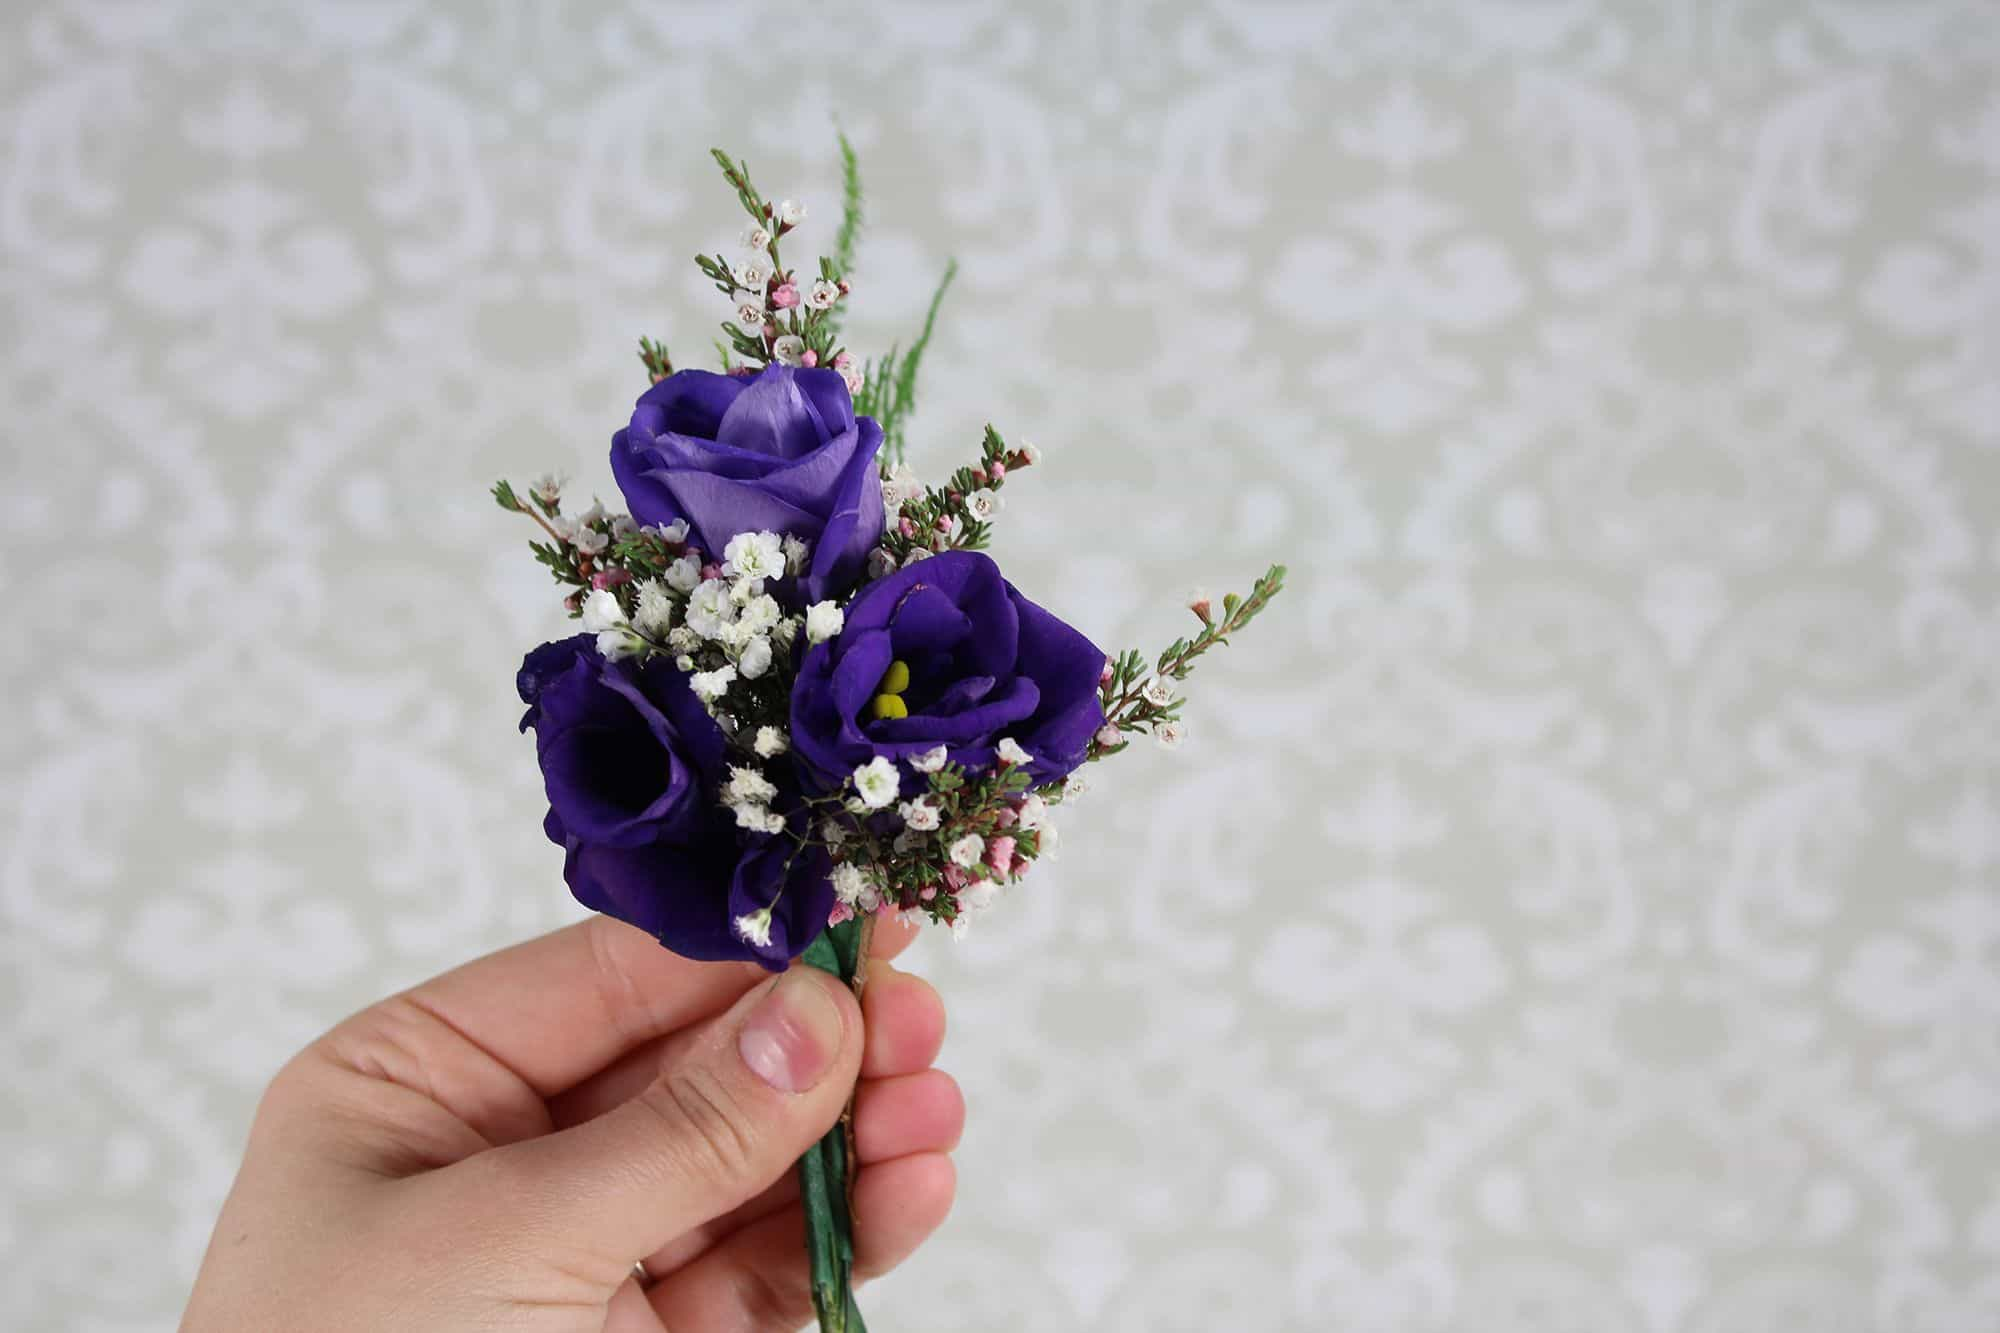 How to Make a Romantic Boutonniere